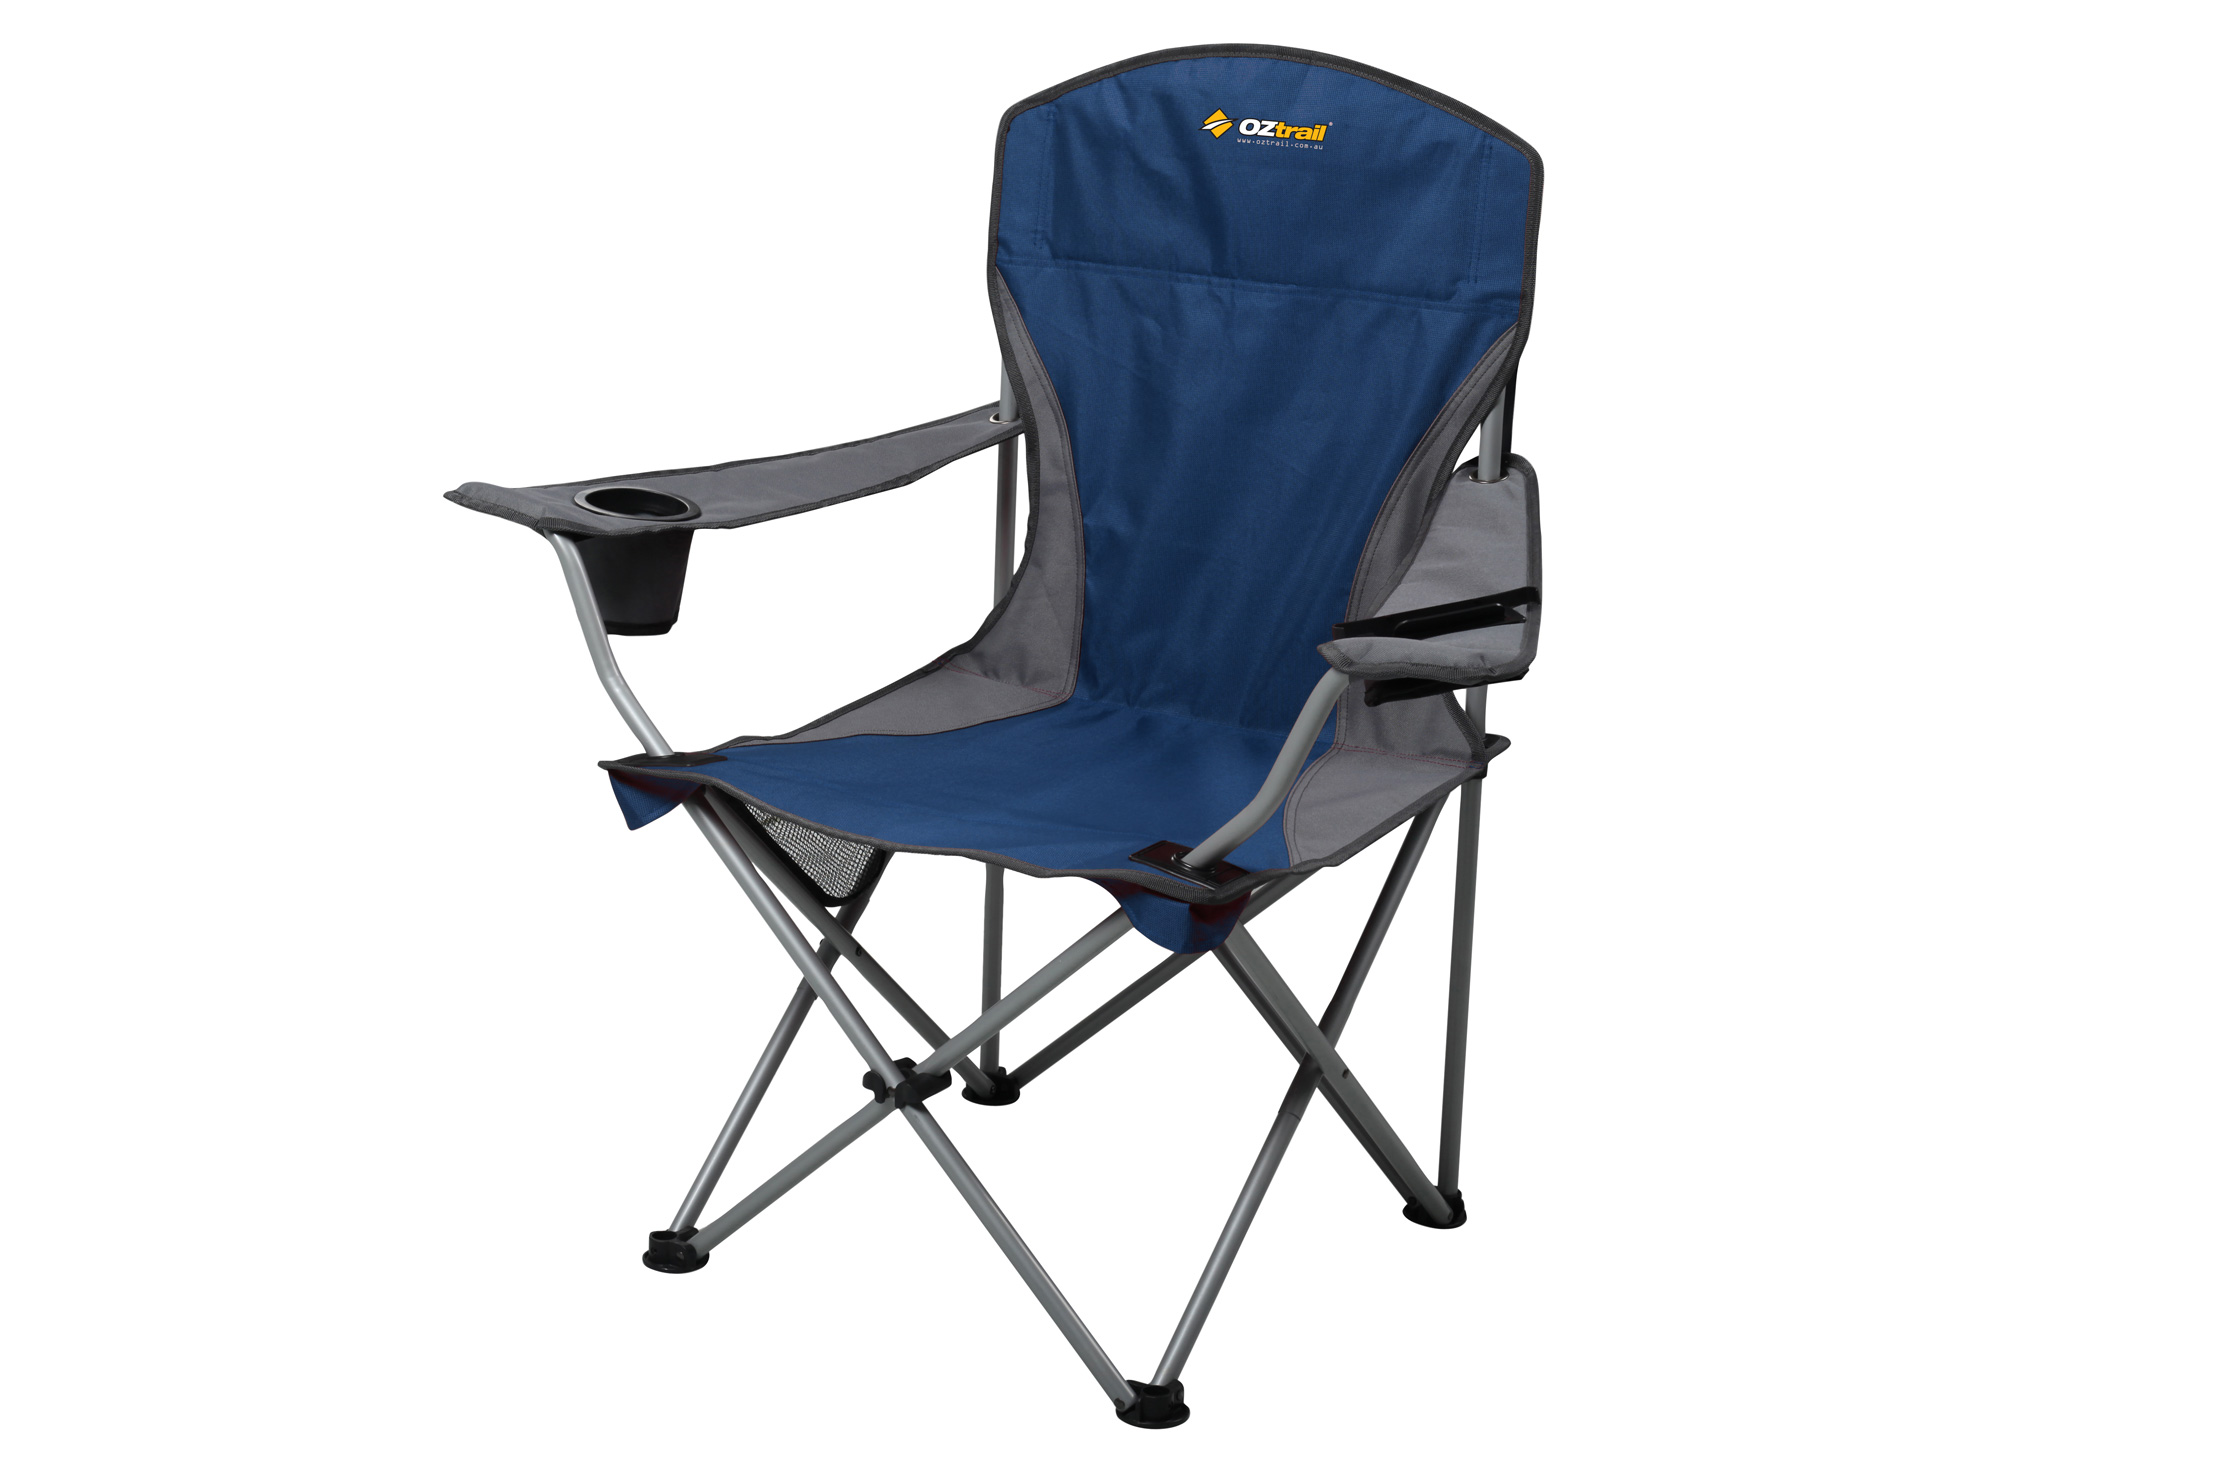 Deluxe Camping Chairs New Oztrail Camping Chair Deluxe Armchair Drink Phone